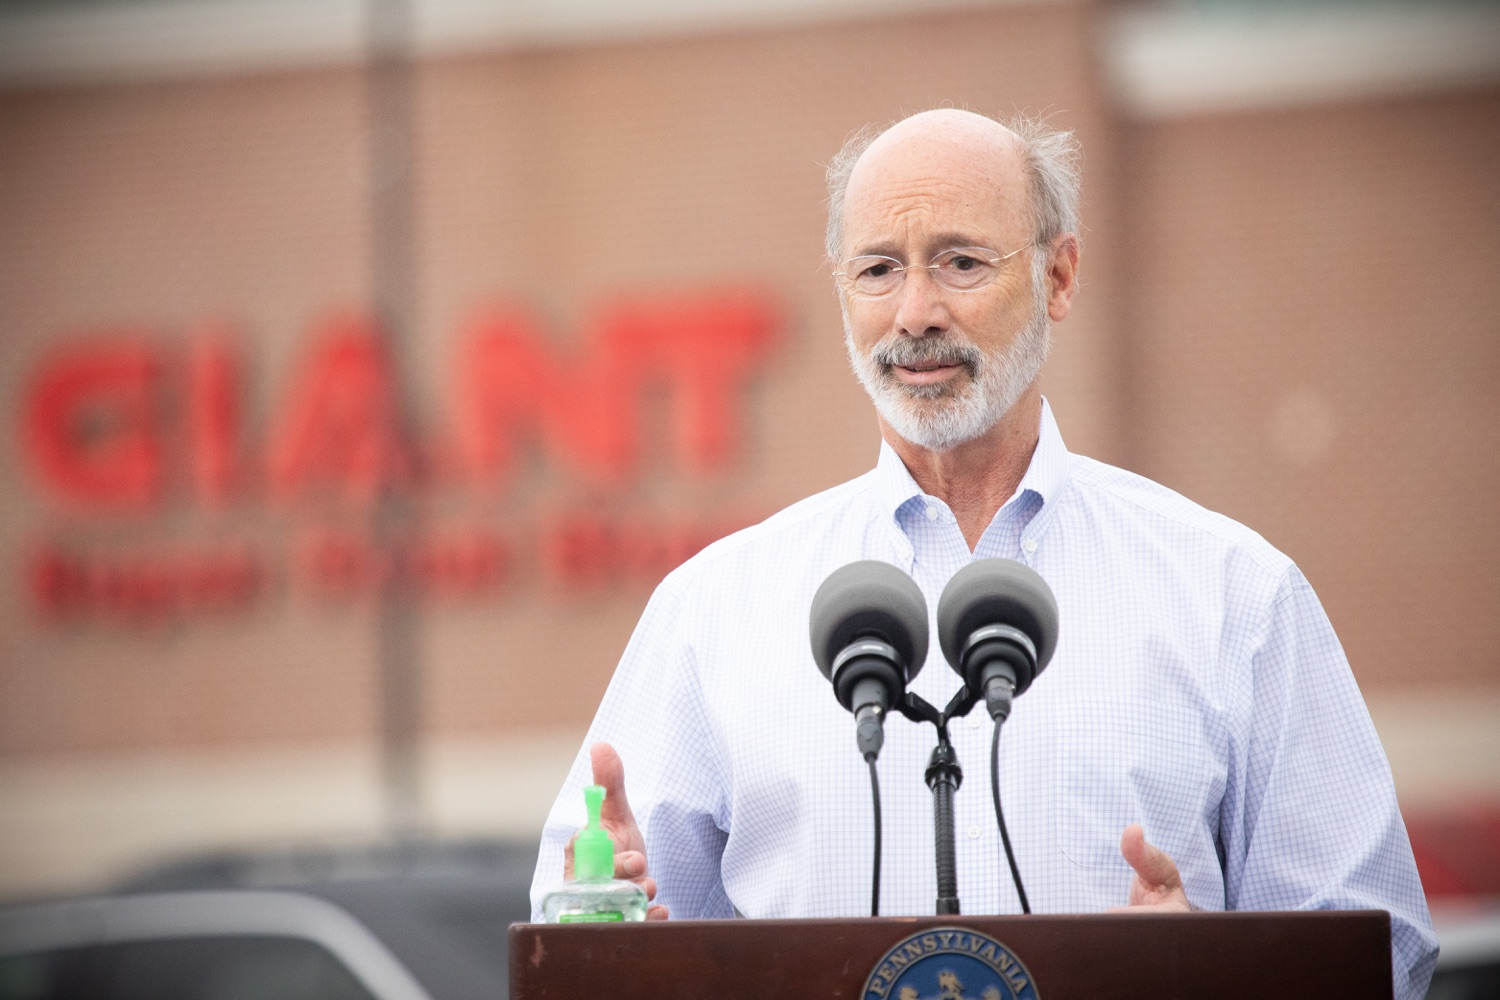 """<a href=""""https://filesource.wostreaming.net/commonwealthofpa/photo/18166_gov_cares_act_dz_17.jpg"""" target=""""_blank"""">⇣Download Photo<br></a>Pennsylvania Governor Tom Wolf speaking to reporters at the announcement. Today, Governor Tom Wolf announced the availability of $50 million in grant funding to help employers provide hazard pay to employees in life-sustaining occupations during the COVID-19 pandemic. Hazard pay is intended to keep front-line employees working in vital industry sectors across Pennsylvania.  Harrisburg, PA  July 16, 2020"""